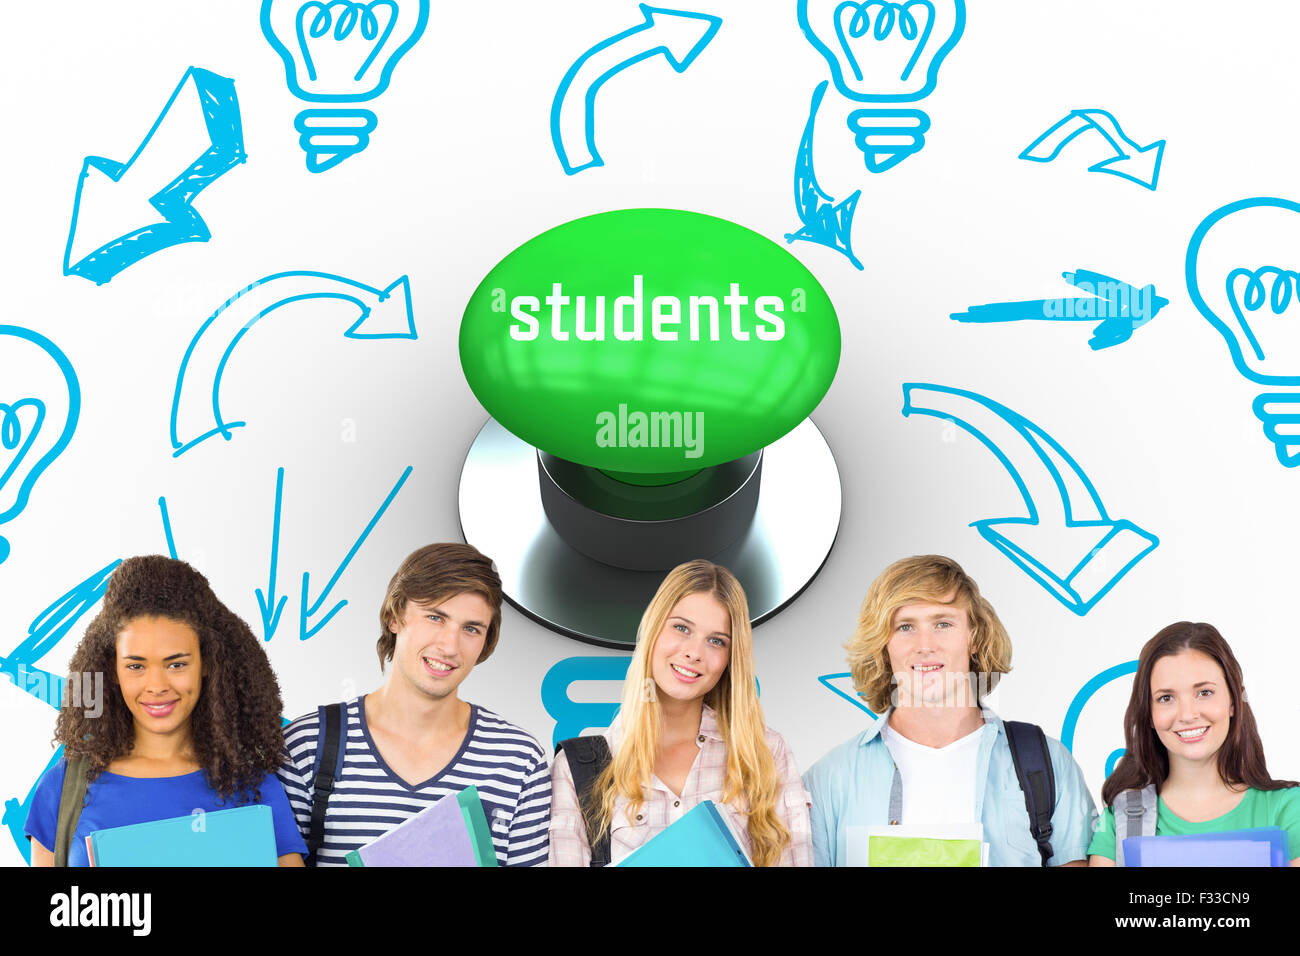 Students against digitally generated green push button - Stock Image